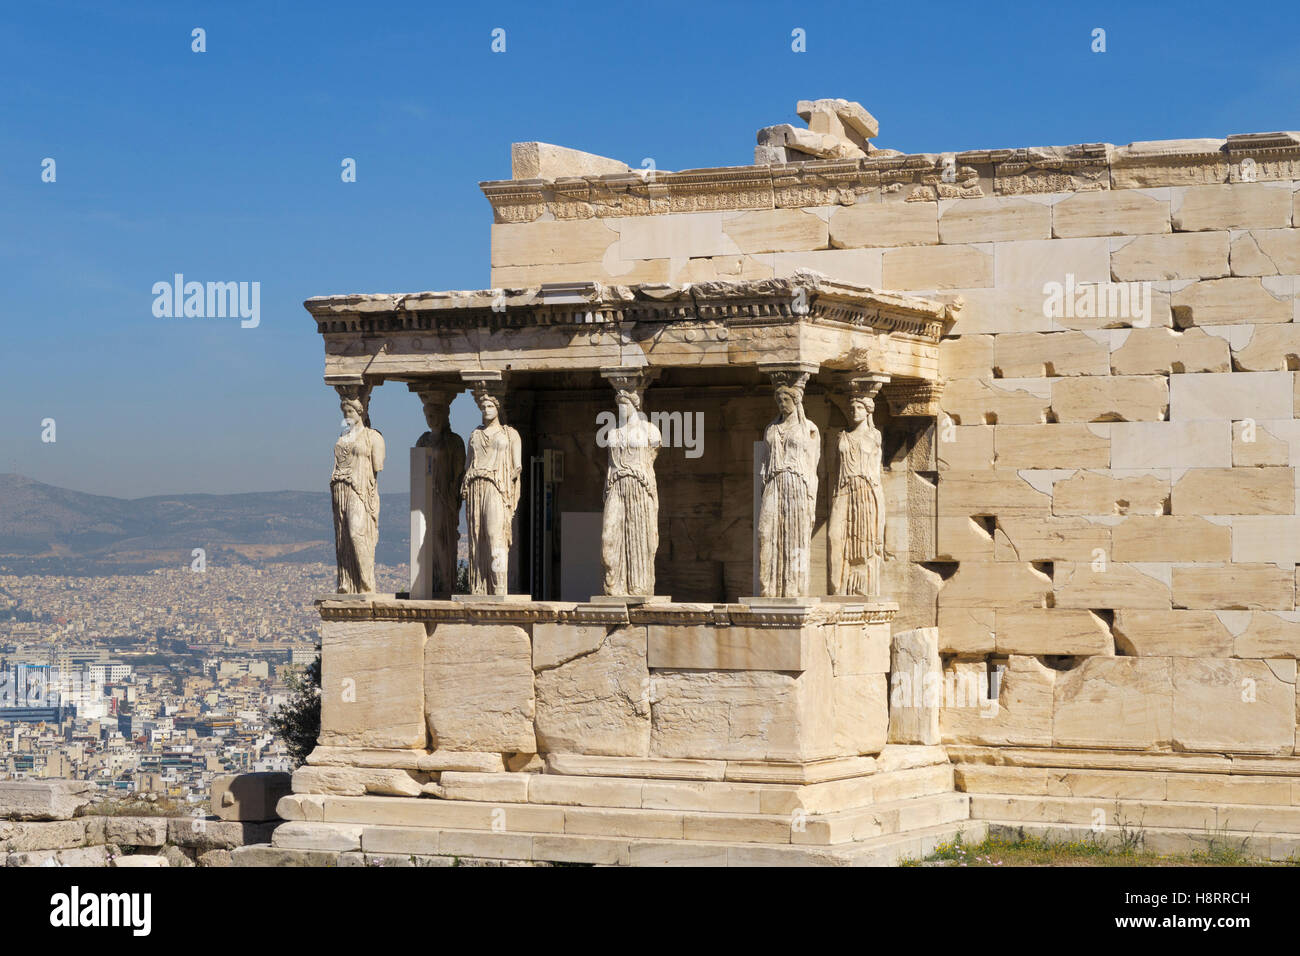 Porch of the Caryatids at the Erechtheion temple, Acropolis, Athens, Greece - Stock Image